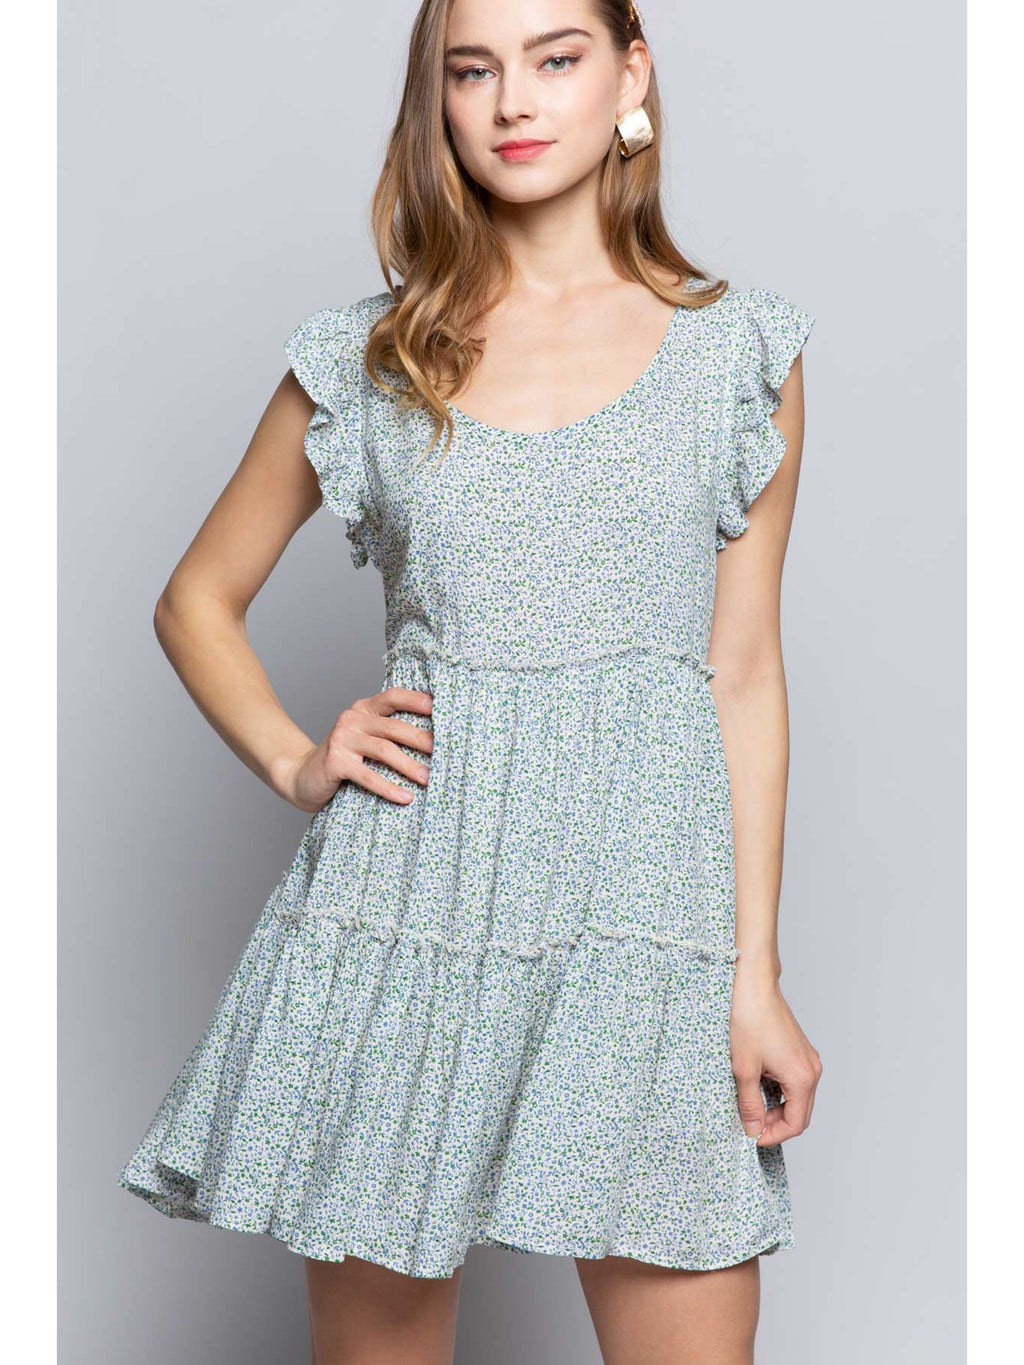 Fresh Air Floral Dress